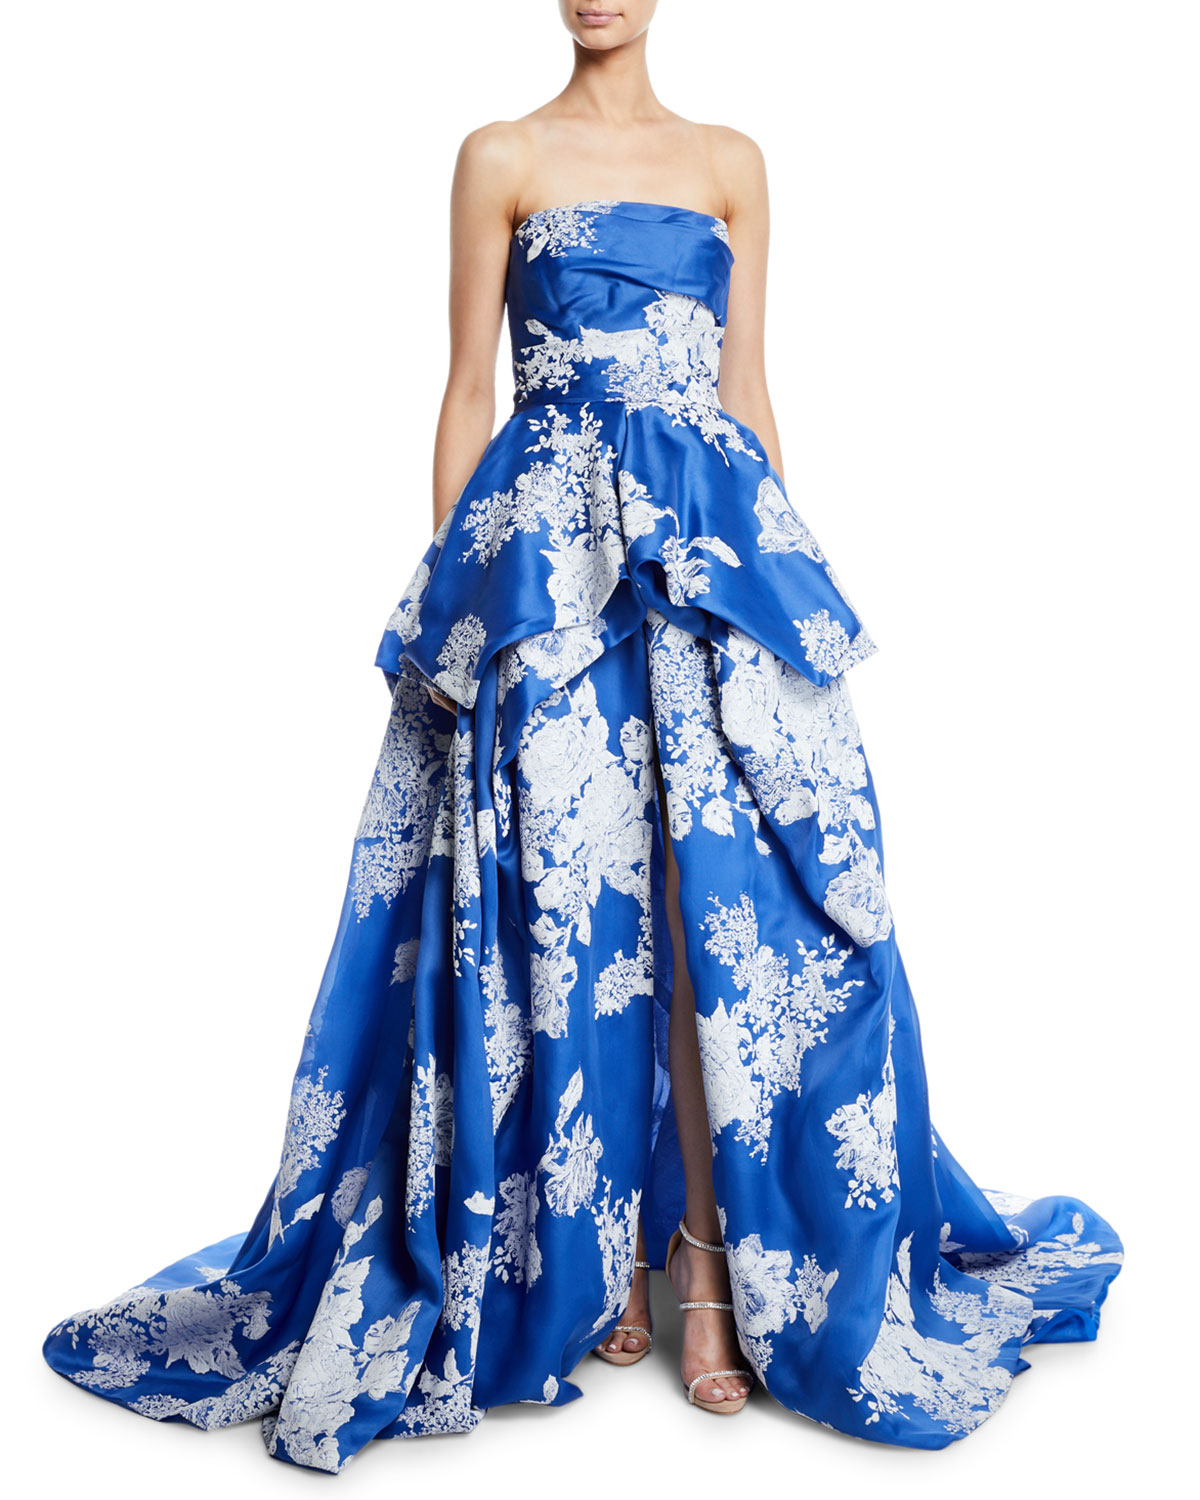 53561274aa4 Monique Lhuillier Strapless Hand-Tufted Floral-Print Organza Ball Gown